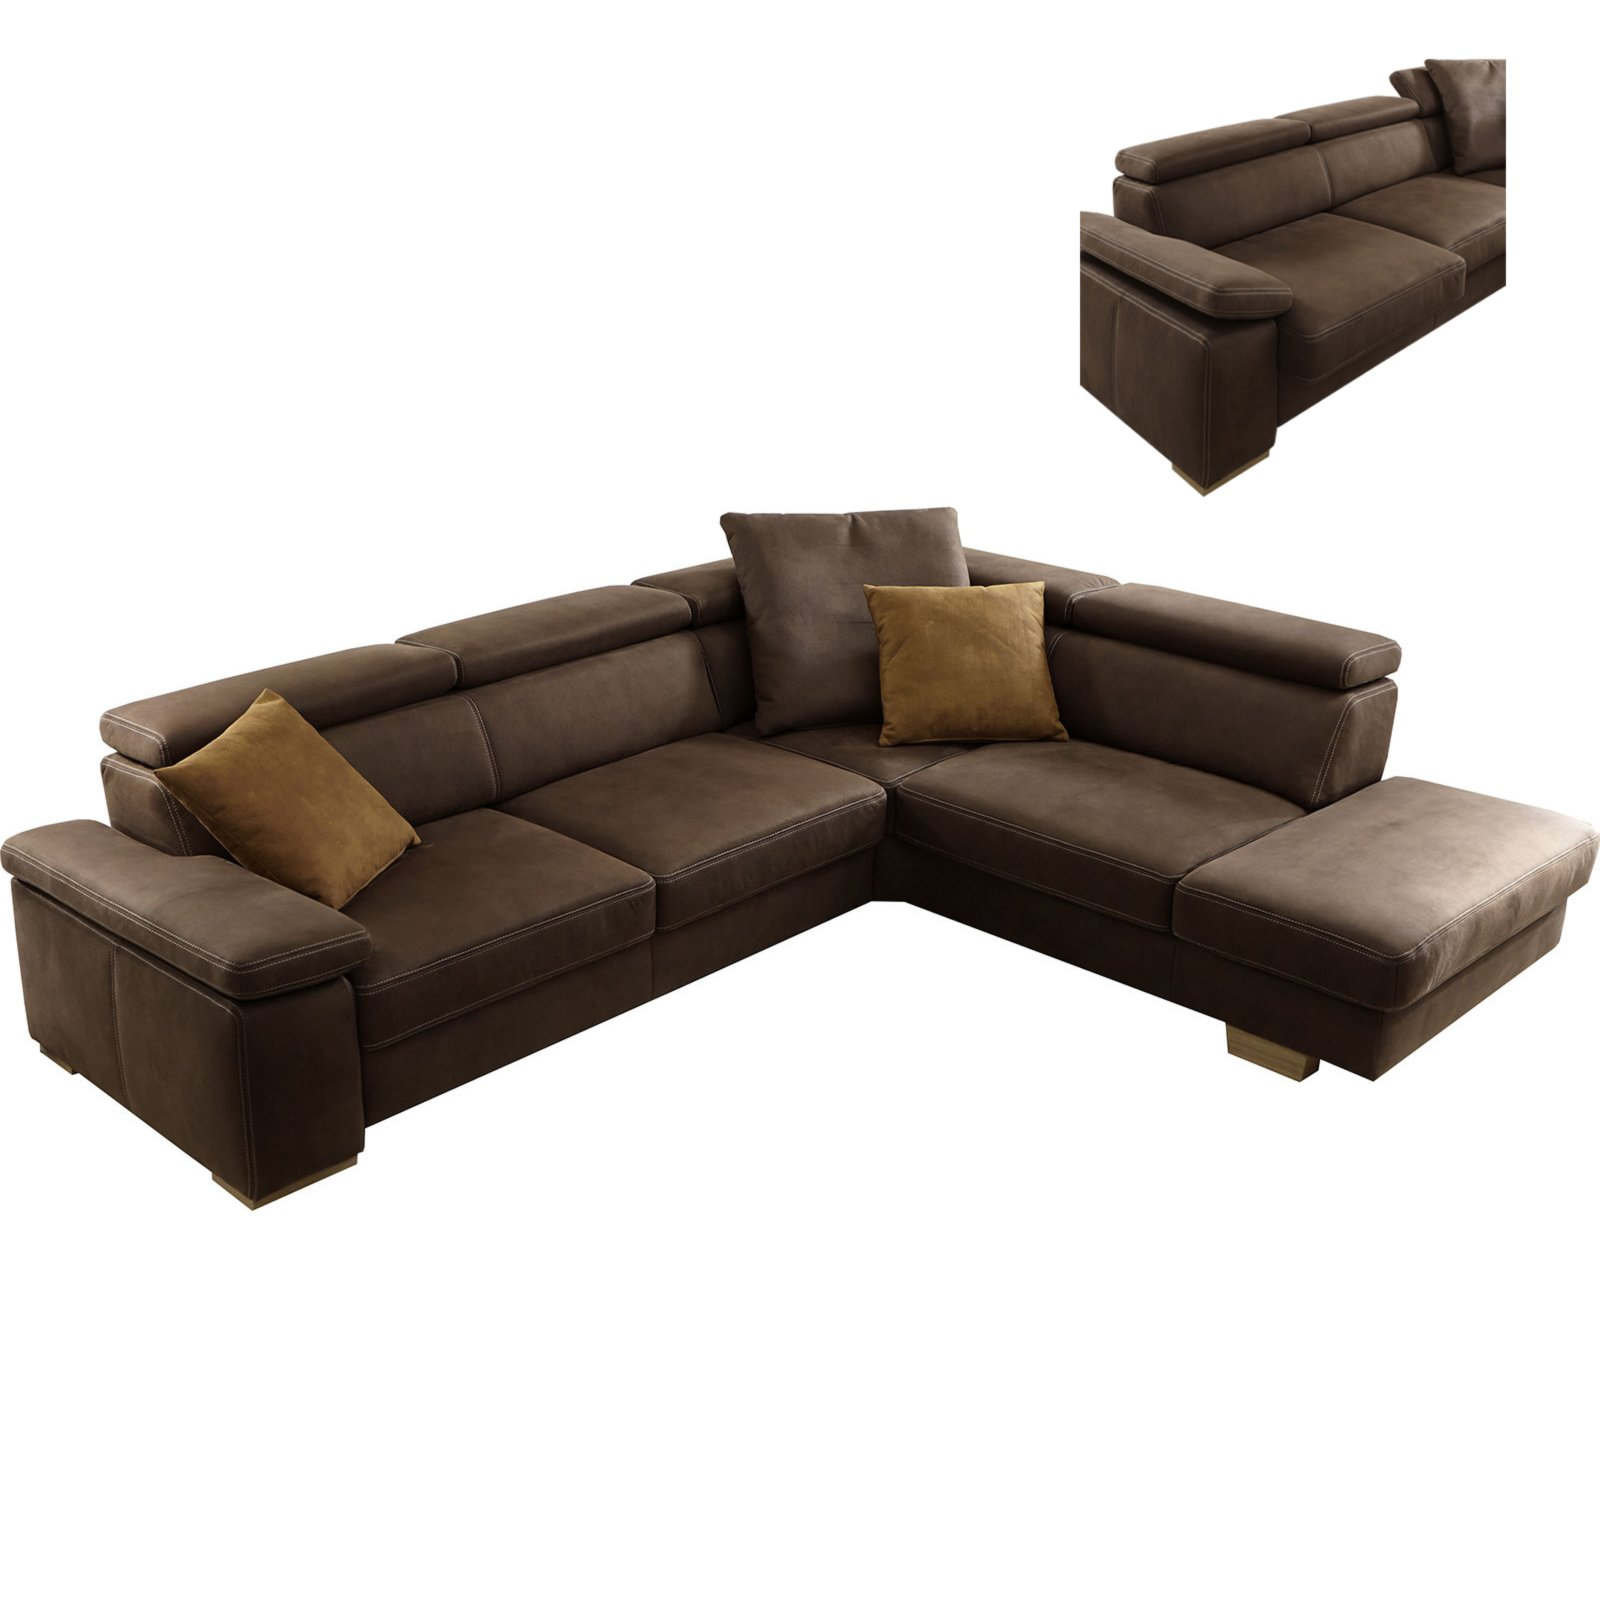 ecksofa braun mit funktionen ecksofas l form sofas couches m bel roller m belhaus. Black Bedroom Furniture Sets. Home Design Ideas